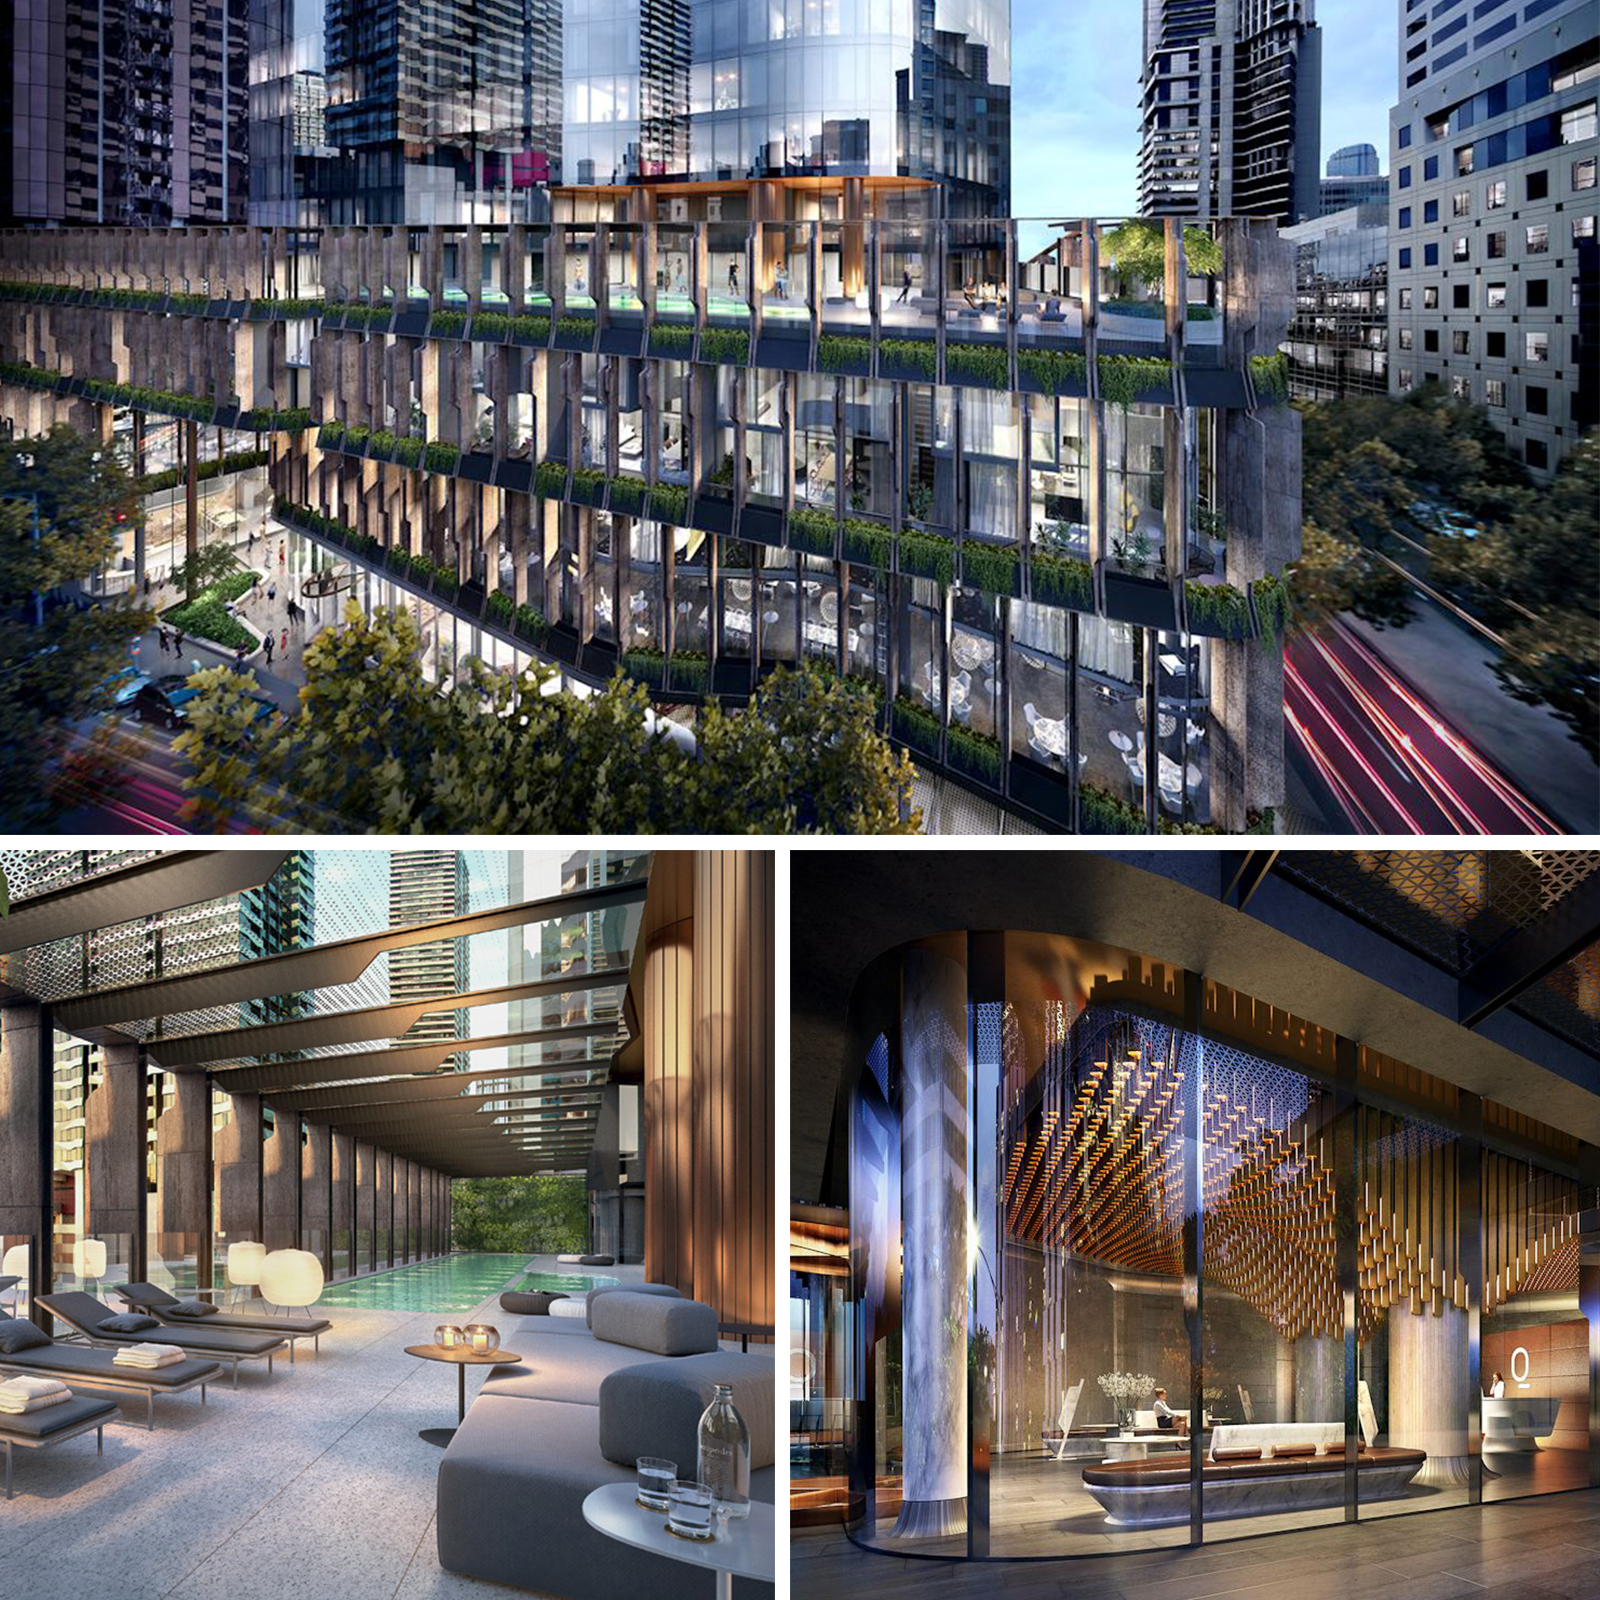 Designed in collaboration by Cox Architecture, Fender Katsalidis Architects and Hecker Guthrie – Melbourne firms of international repute.